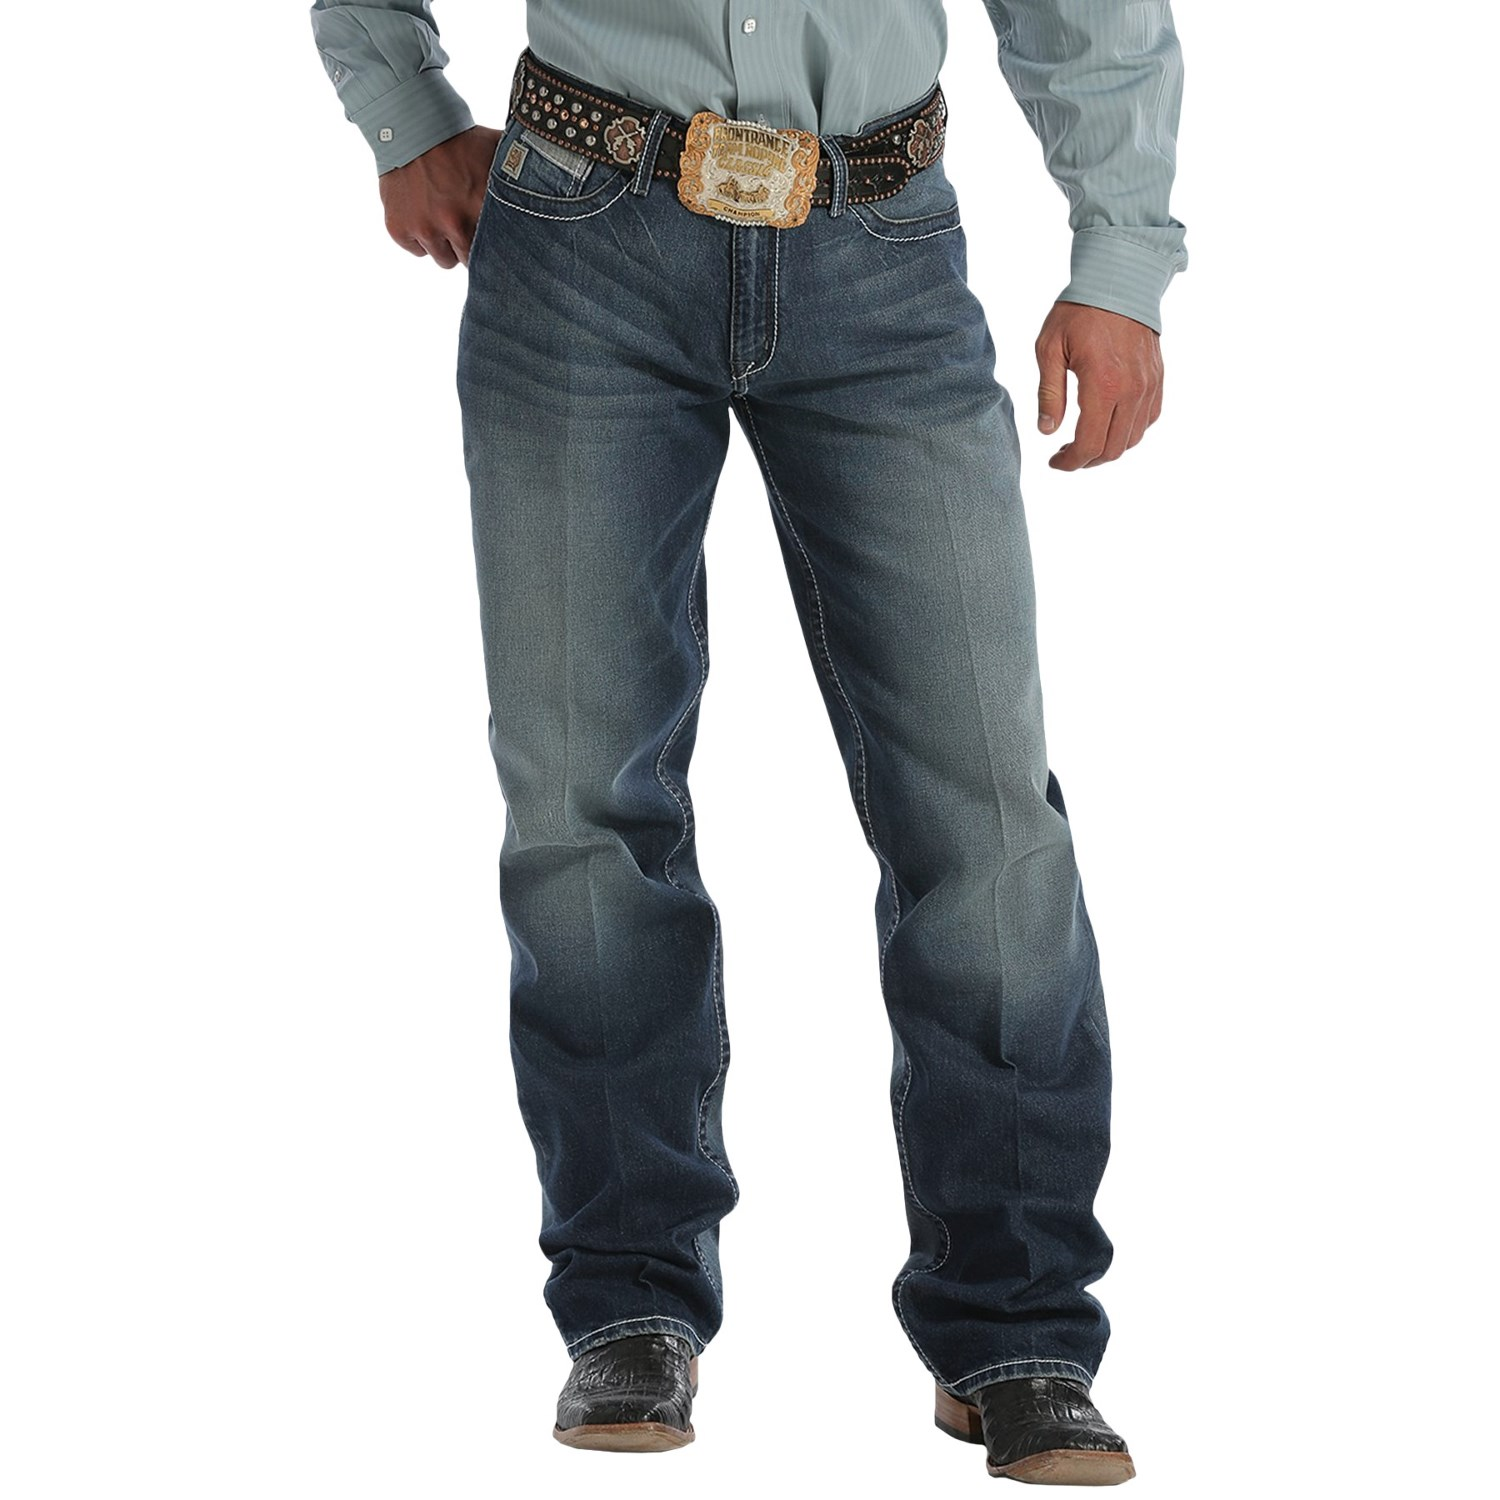 Game on closeouts sporting goods - Cinch Grant High Performance Jeans Relaxed Fit Bootcut For Men In